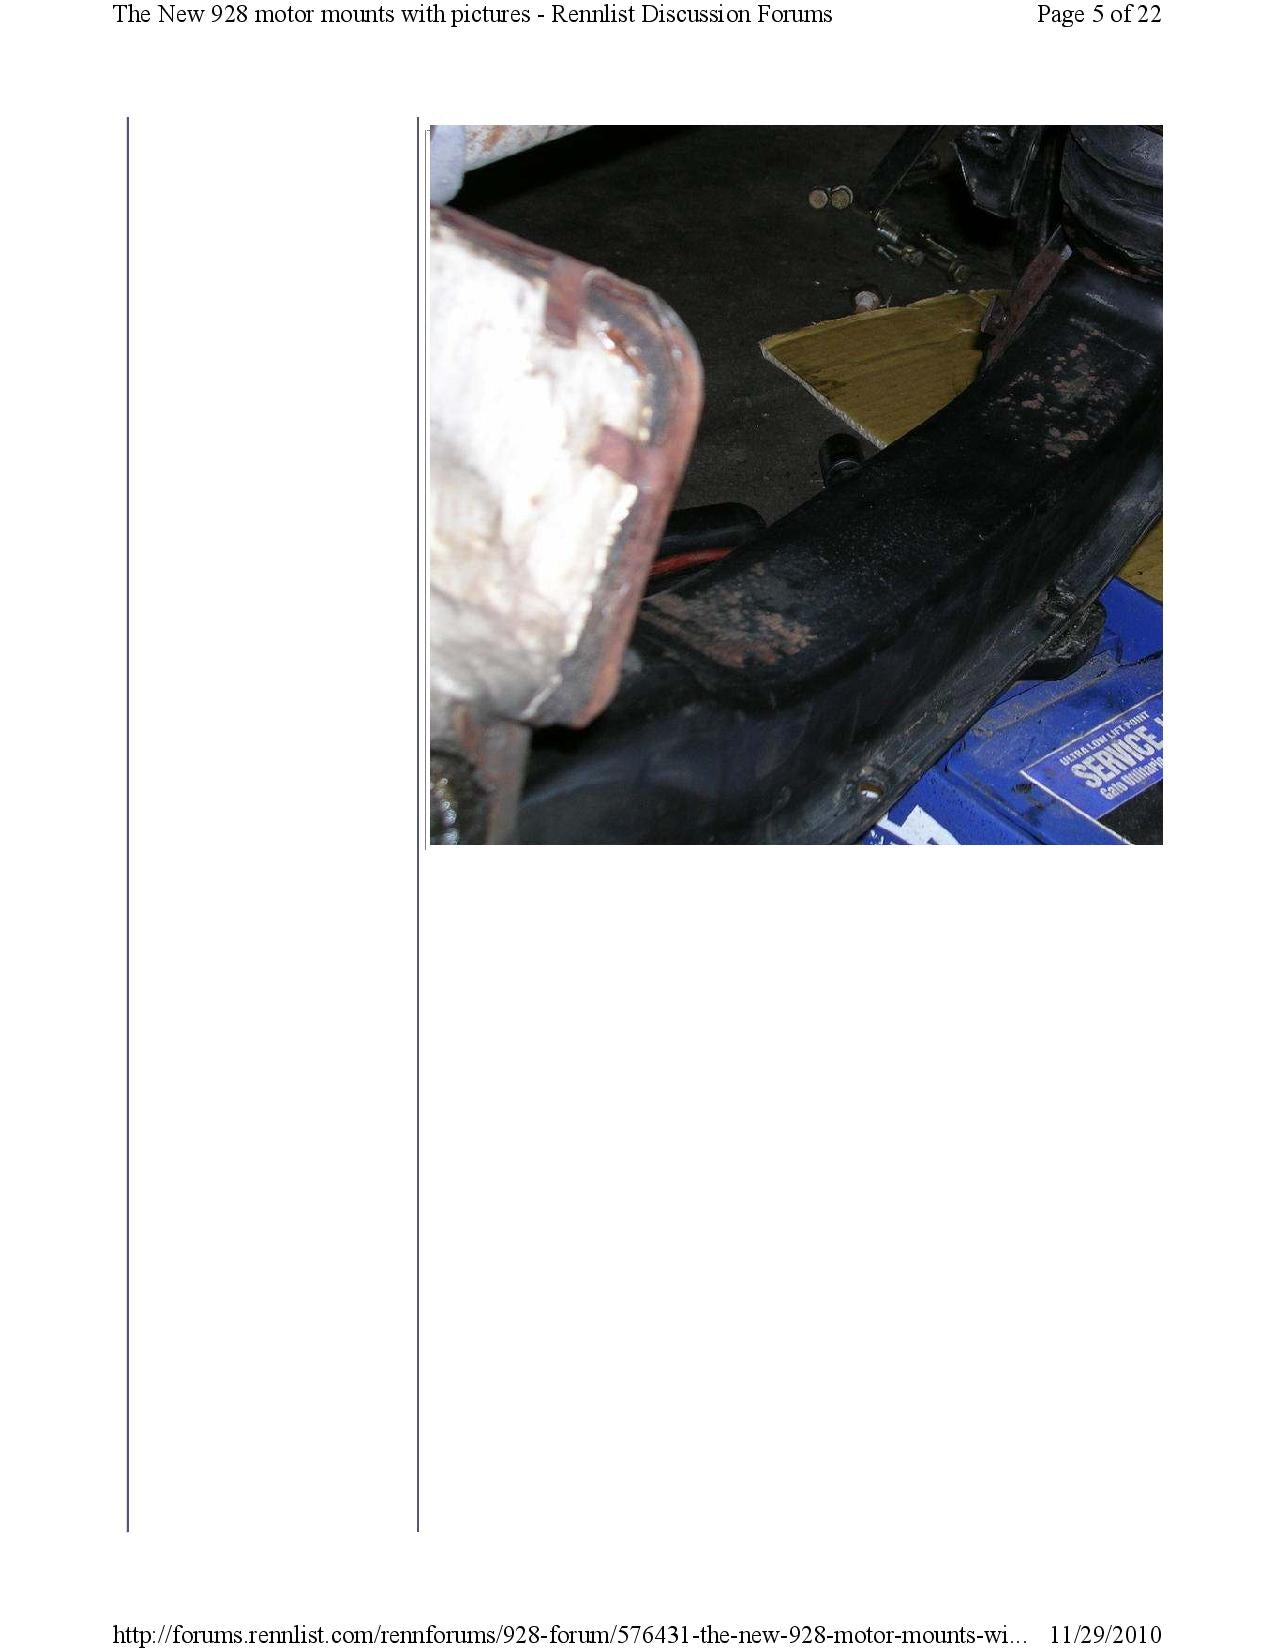 New 928 motor mounts with pictures pg5